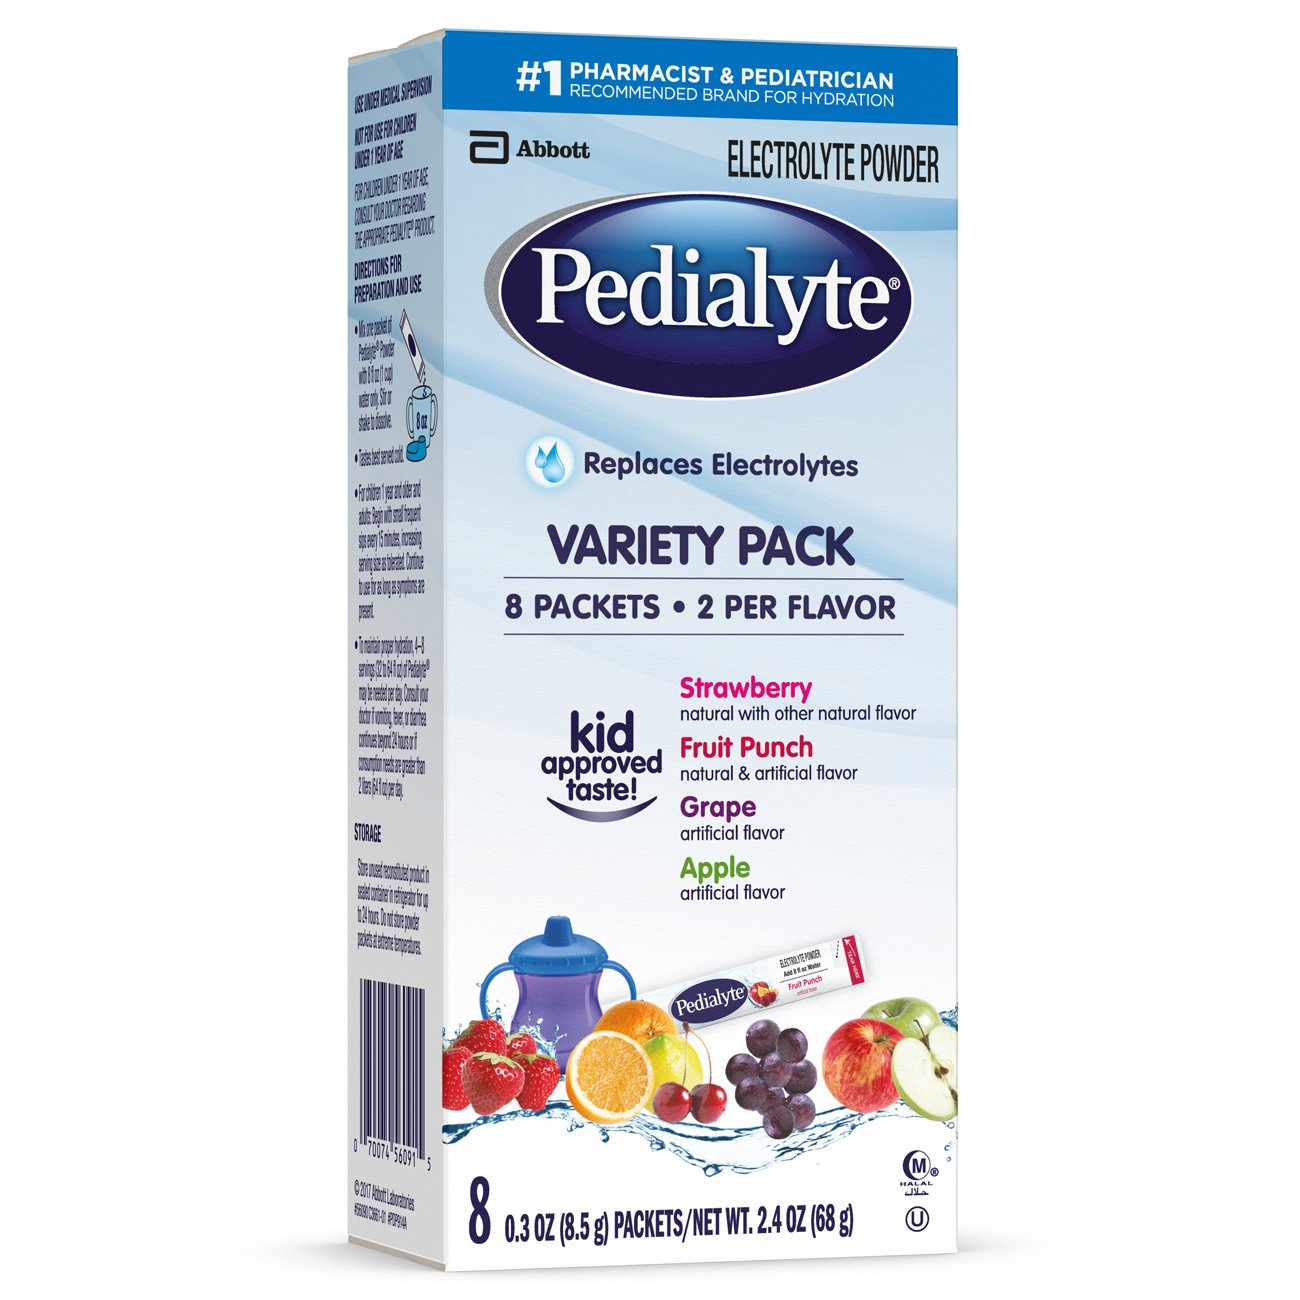 Pedialyte Electrolyte Powder, Electrolyte Drink, Variety Pack, Powder Sticks, 0.3 oz (24 Count) Abbott Laboratories 070074663630